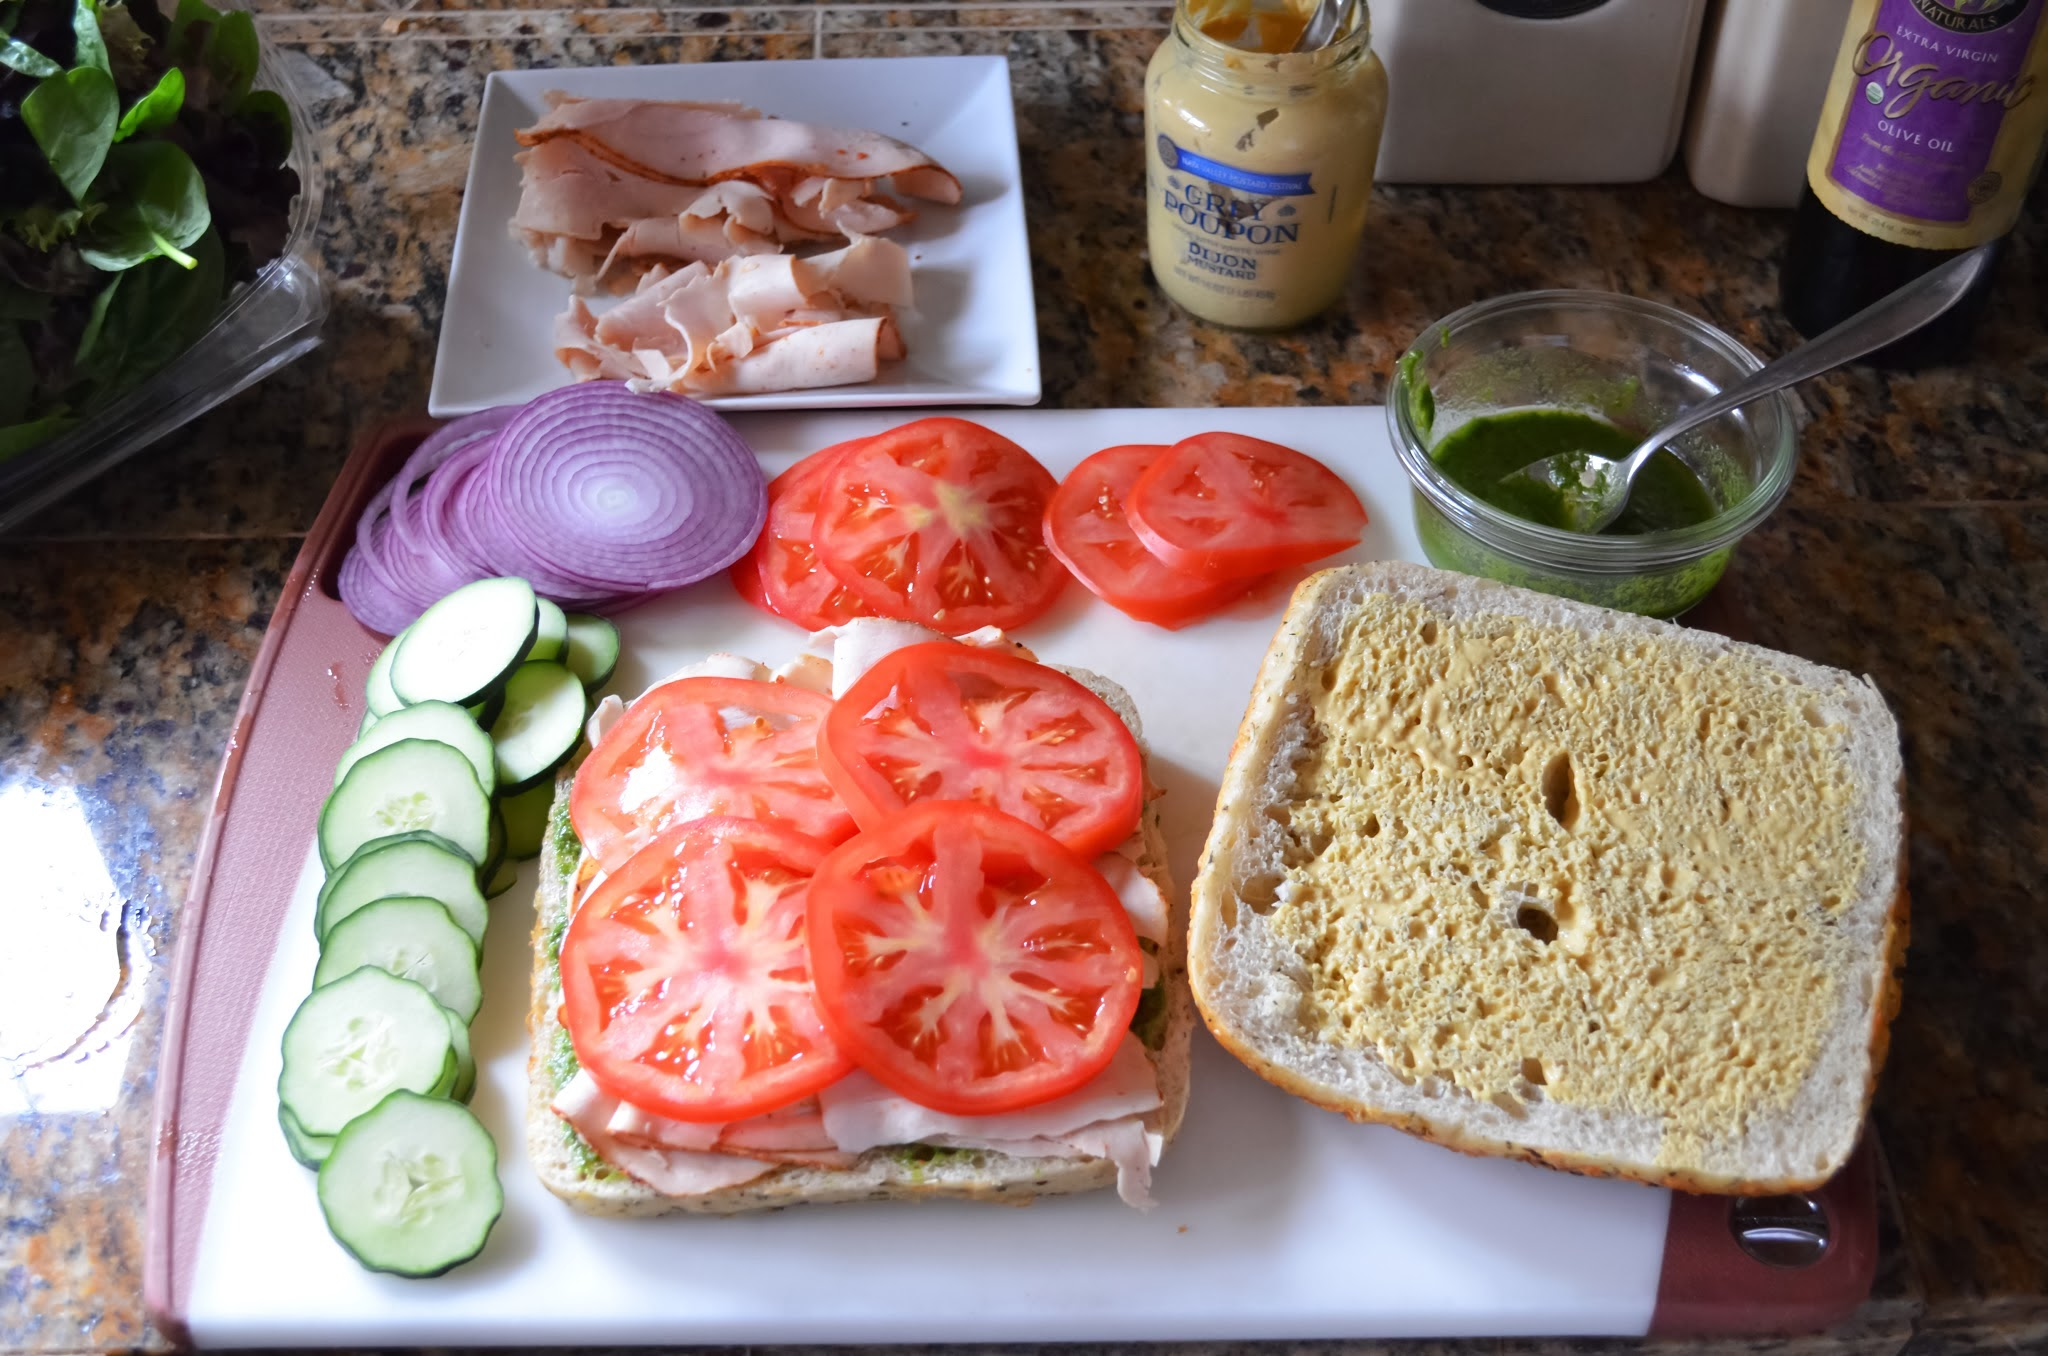 Turkey covered with tomatoes on focaccia bread.